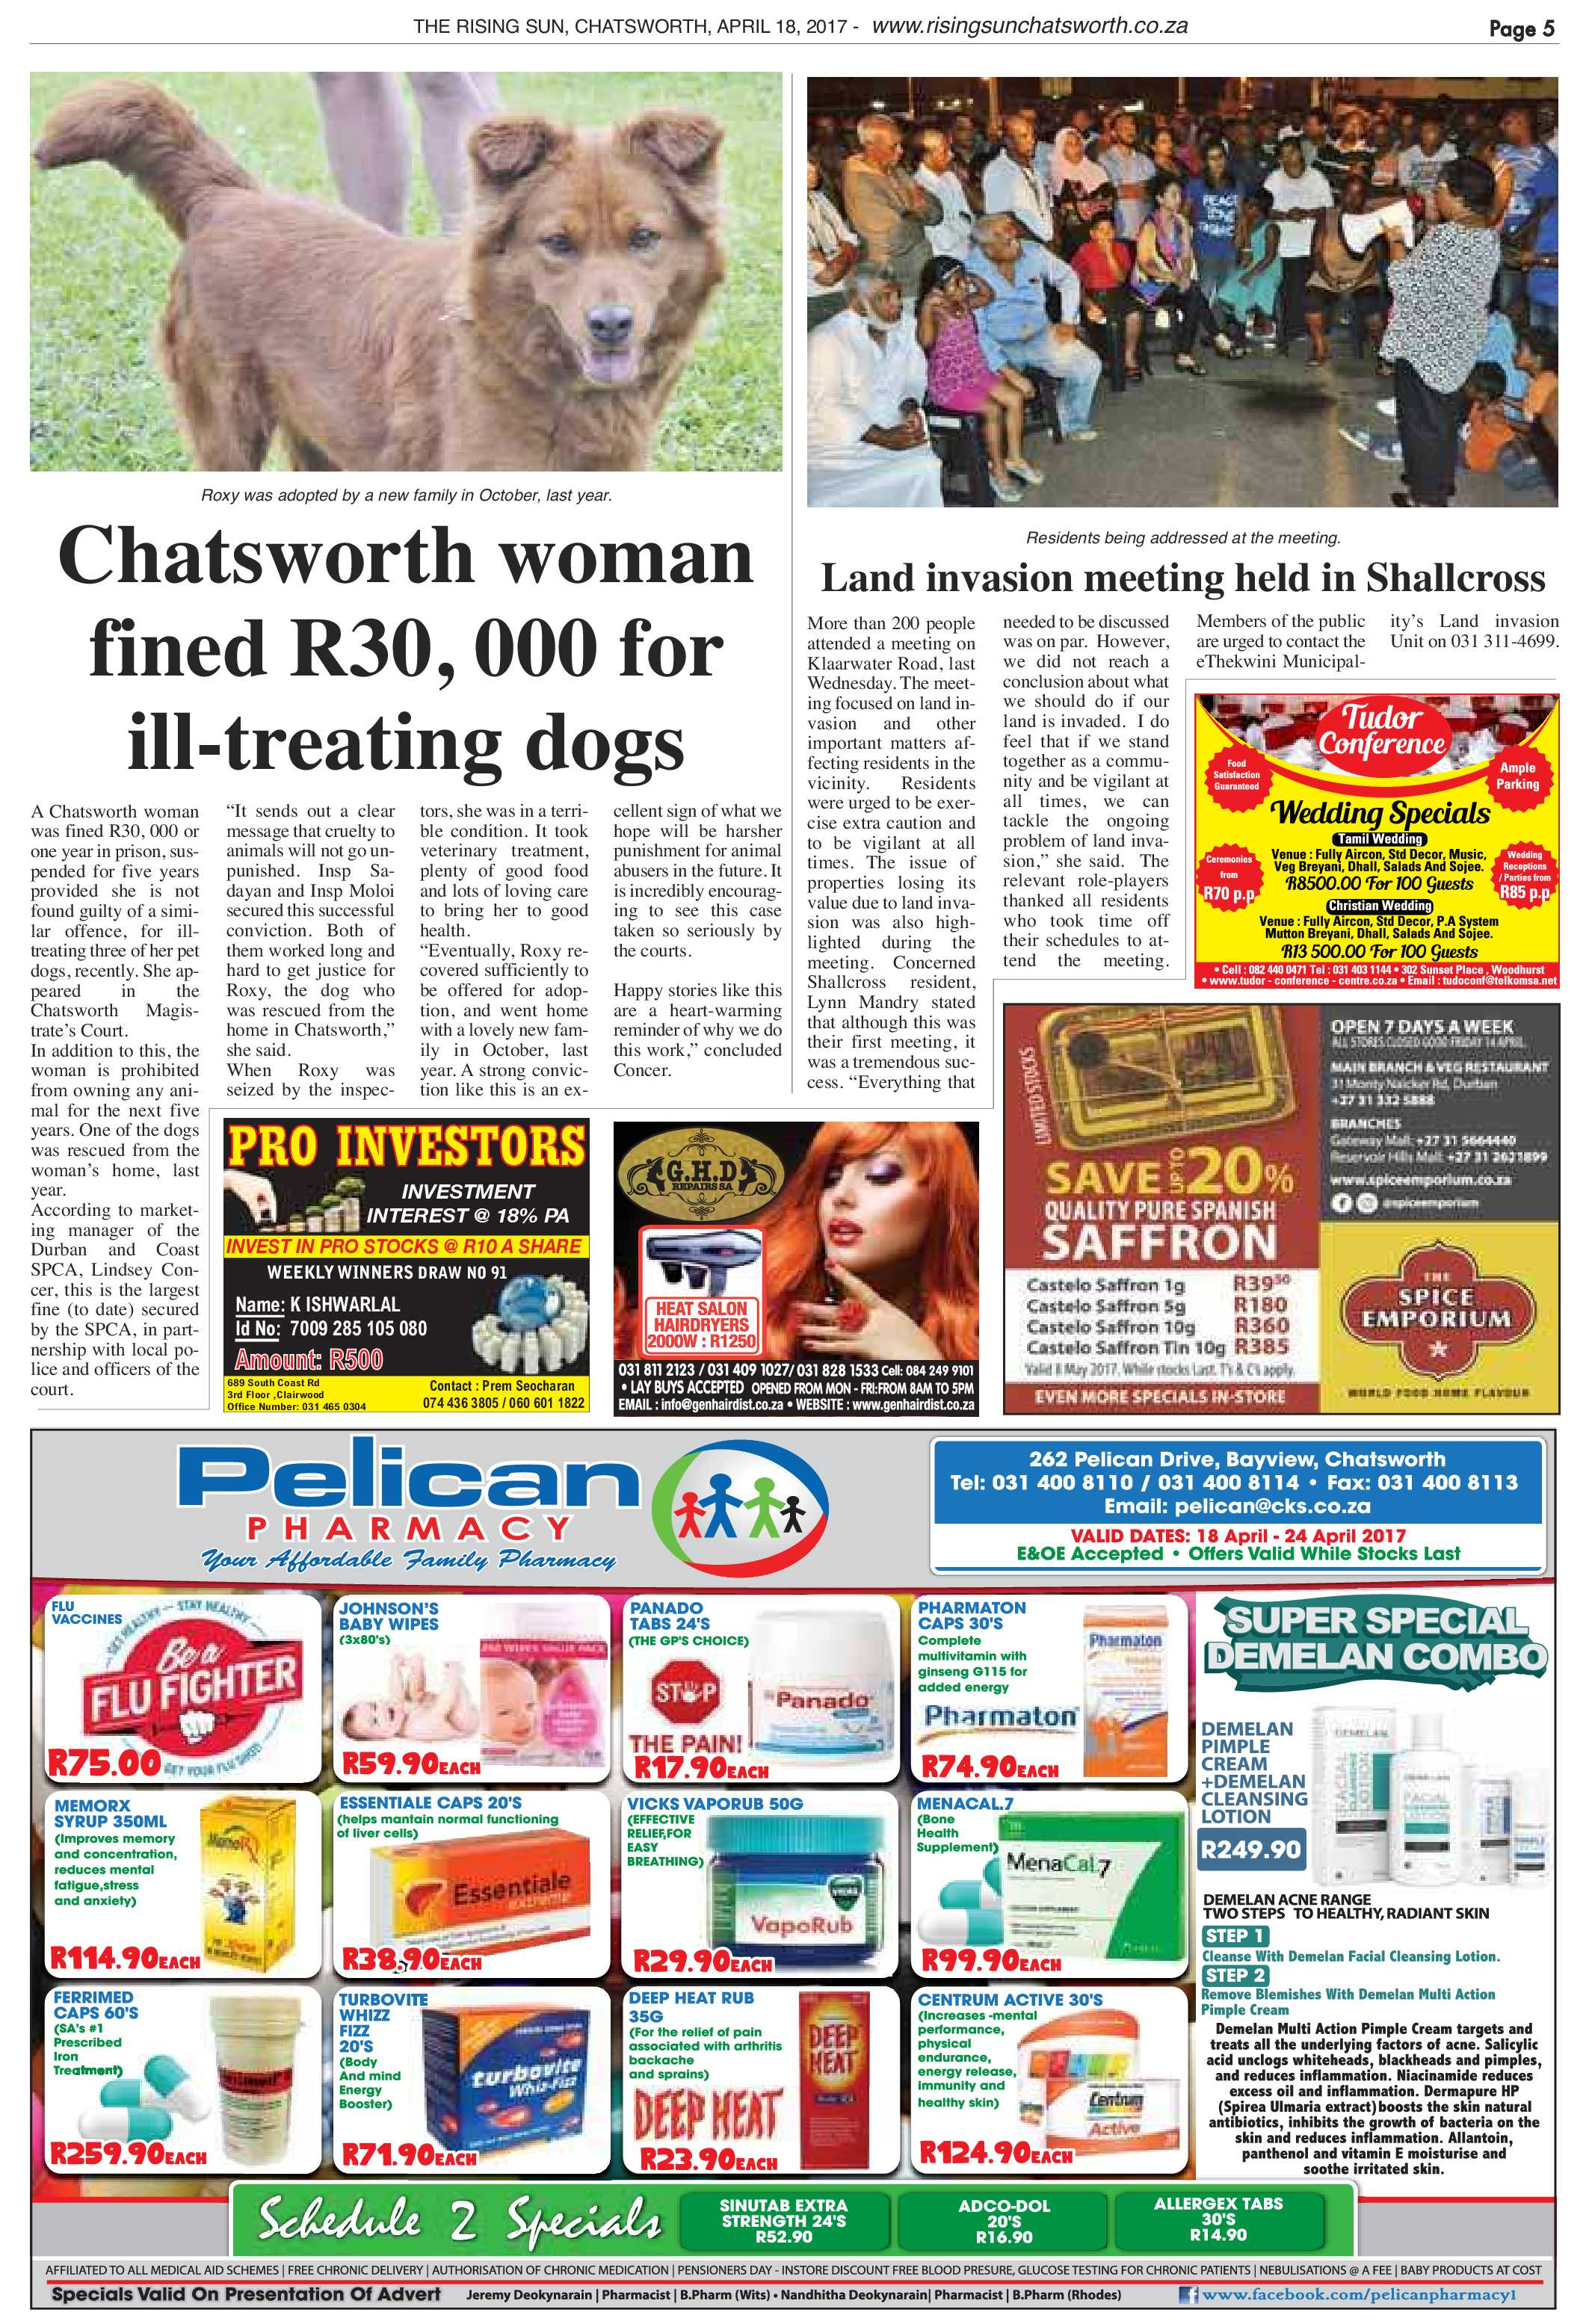 chatsworth-april-18-epapers-page-5